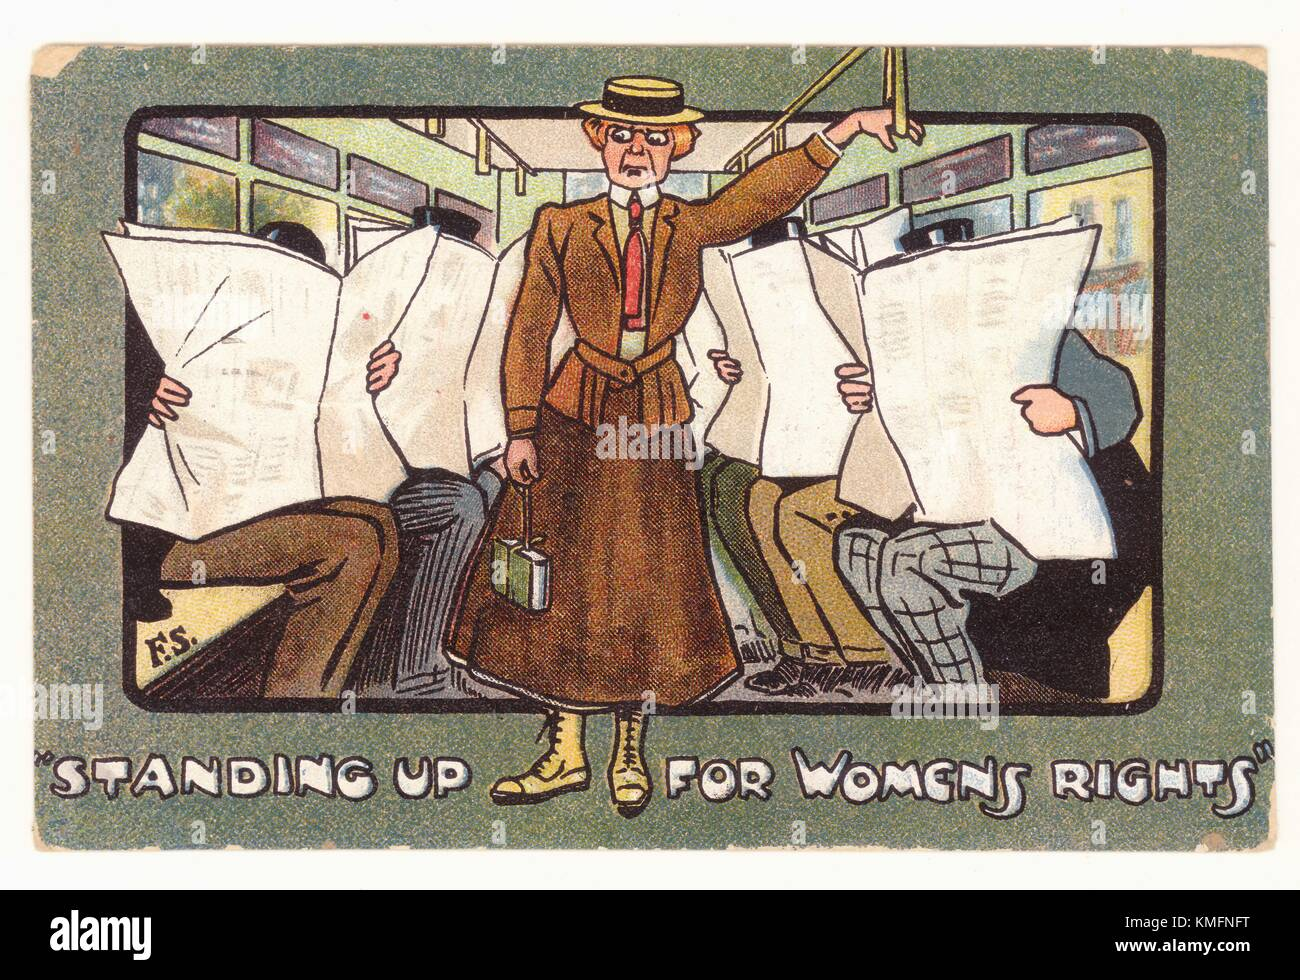 Edwardian propaganda comic picture postcard - standing up for women's rights - anti-suffragette card, typically - Stock Image